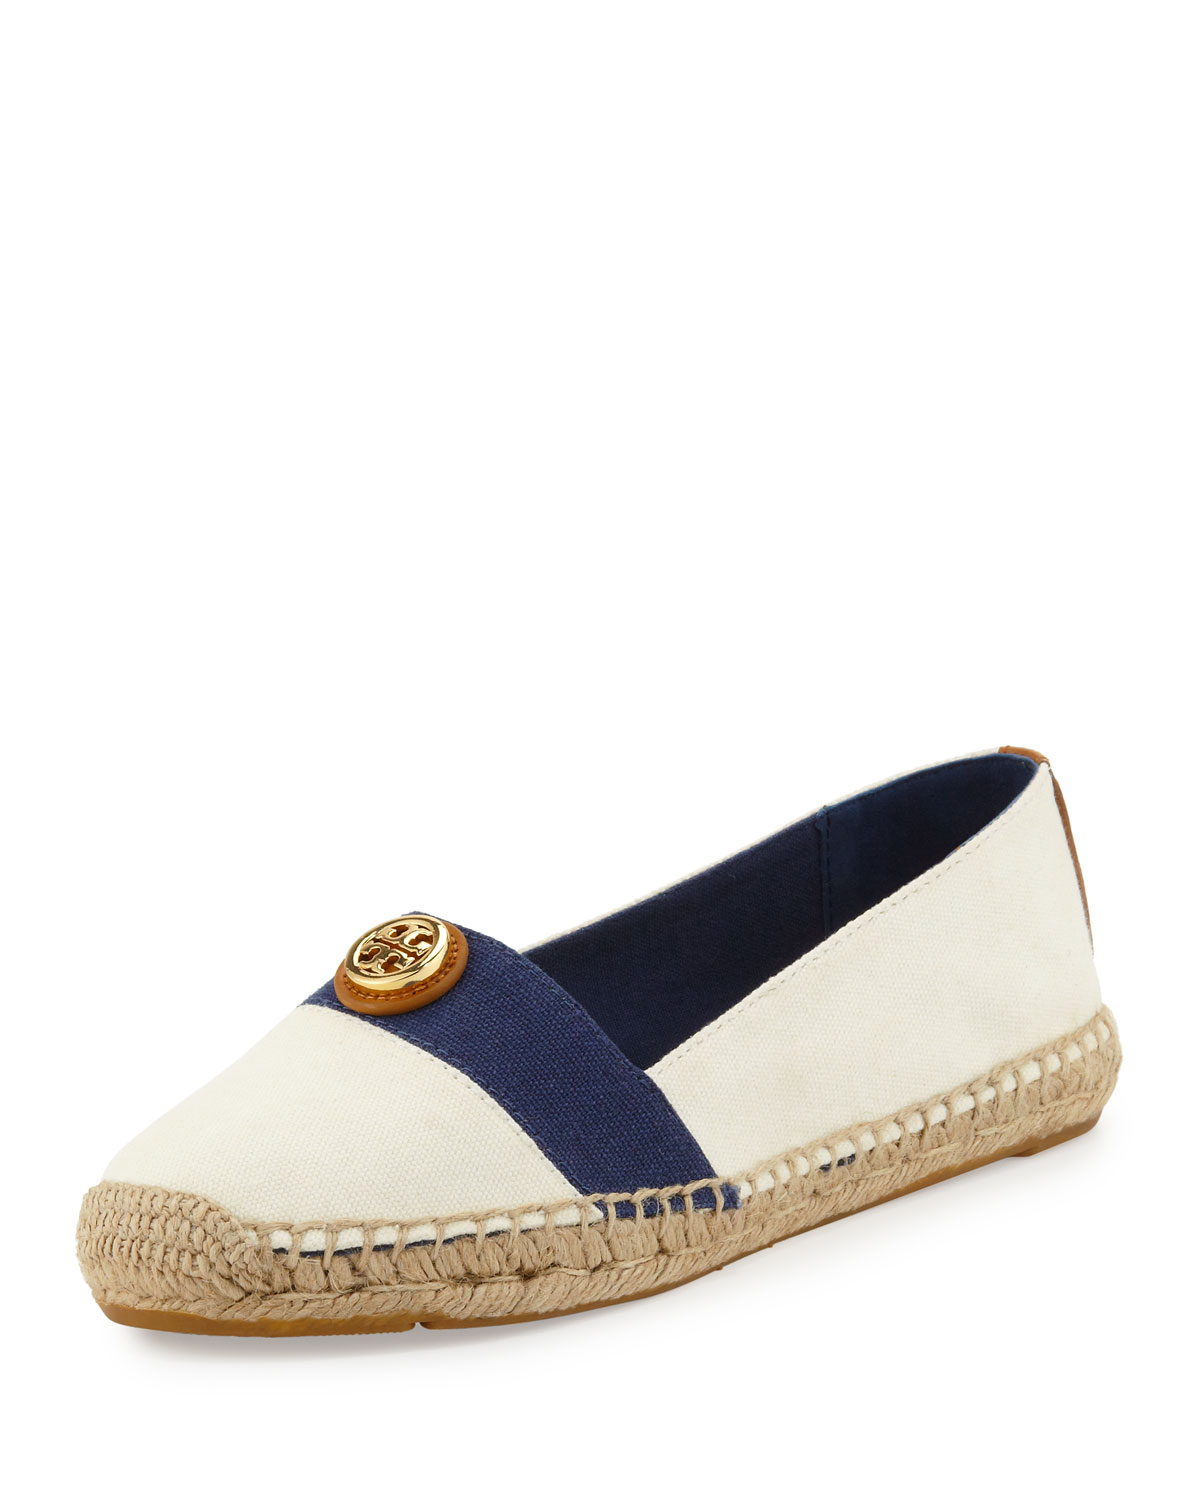 504a48e15a7 ... low cost lyst tory burch beacher canvas espadrille flat ivorynewport  navy d56ac 8918b